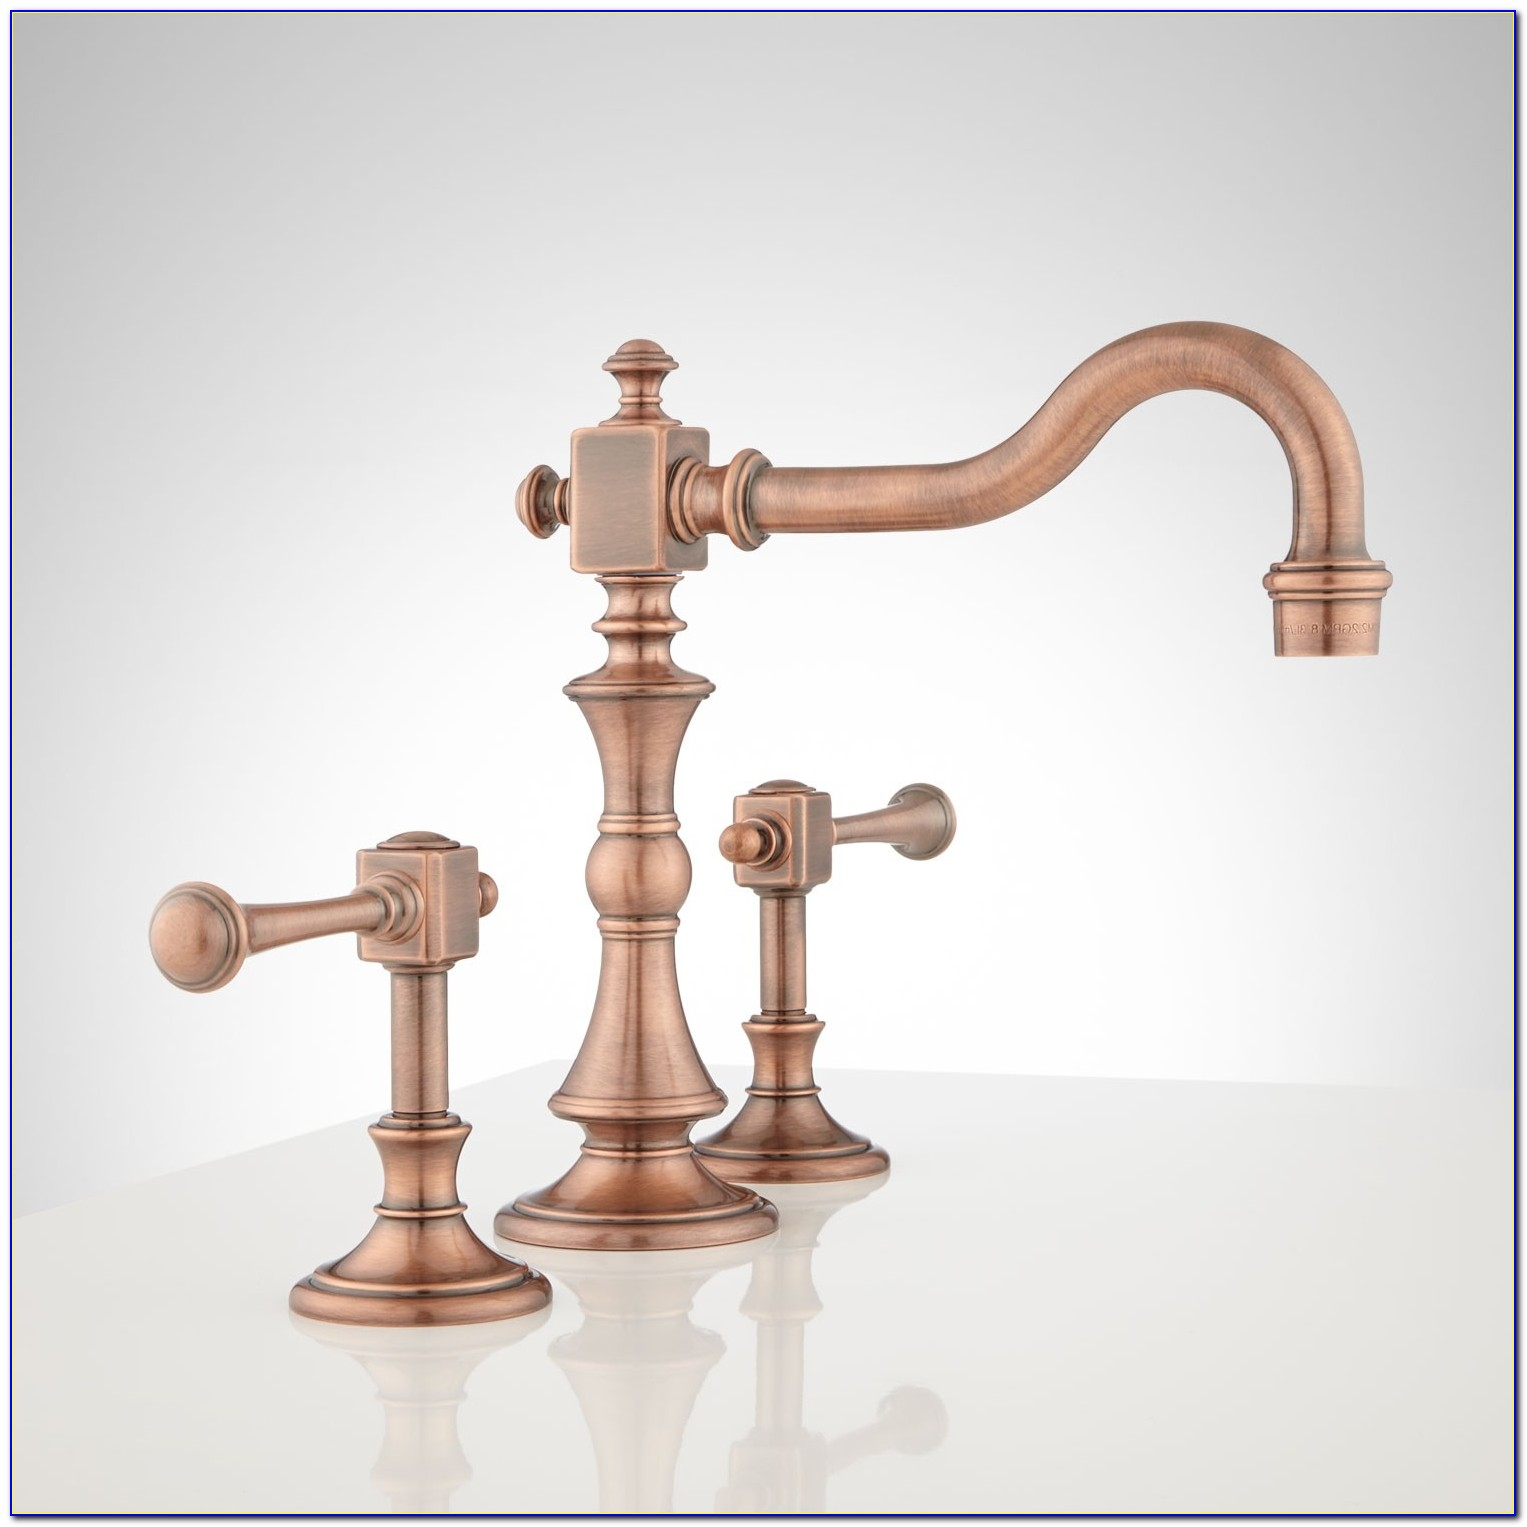 Old Fashioned Bath Faucets Old Fashioned Bath Faucets Vintage Widespread Bathroom Faucet Lever Handles Bathroom Sink 1500 X 1500